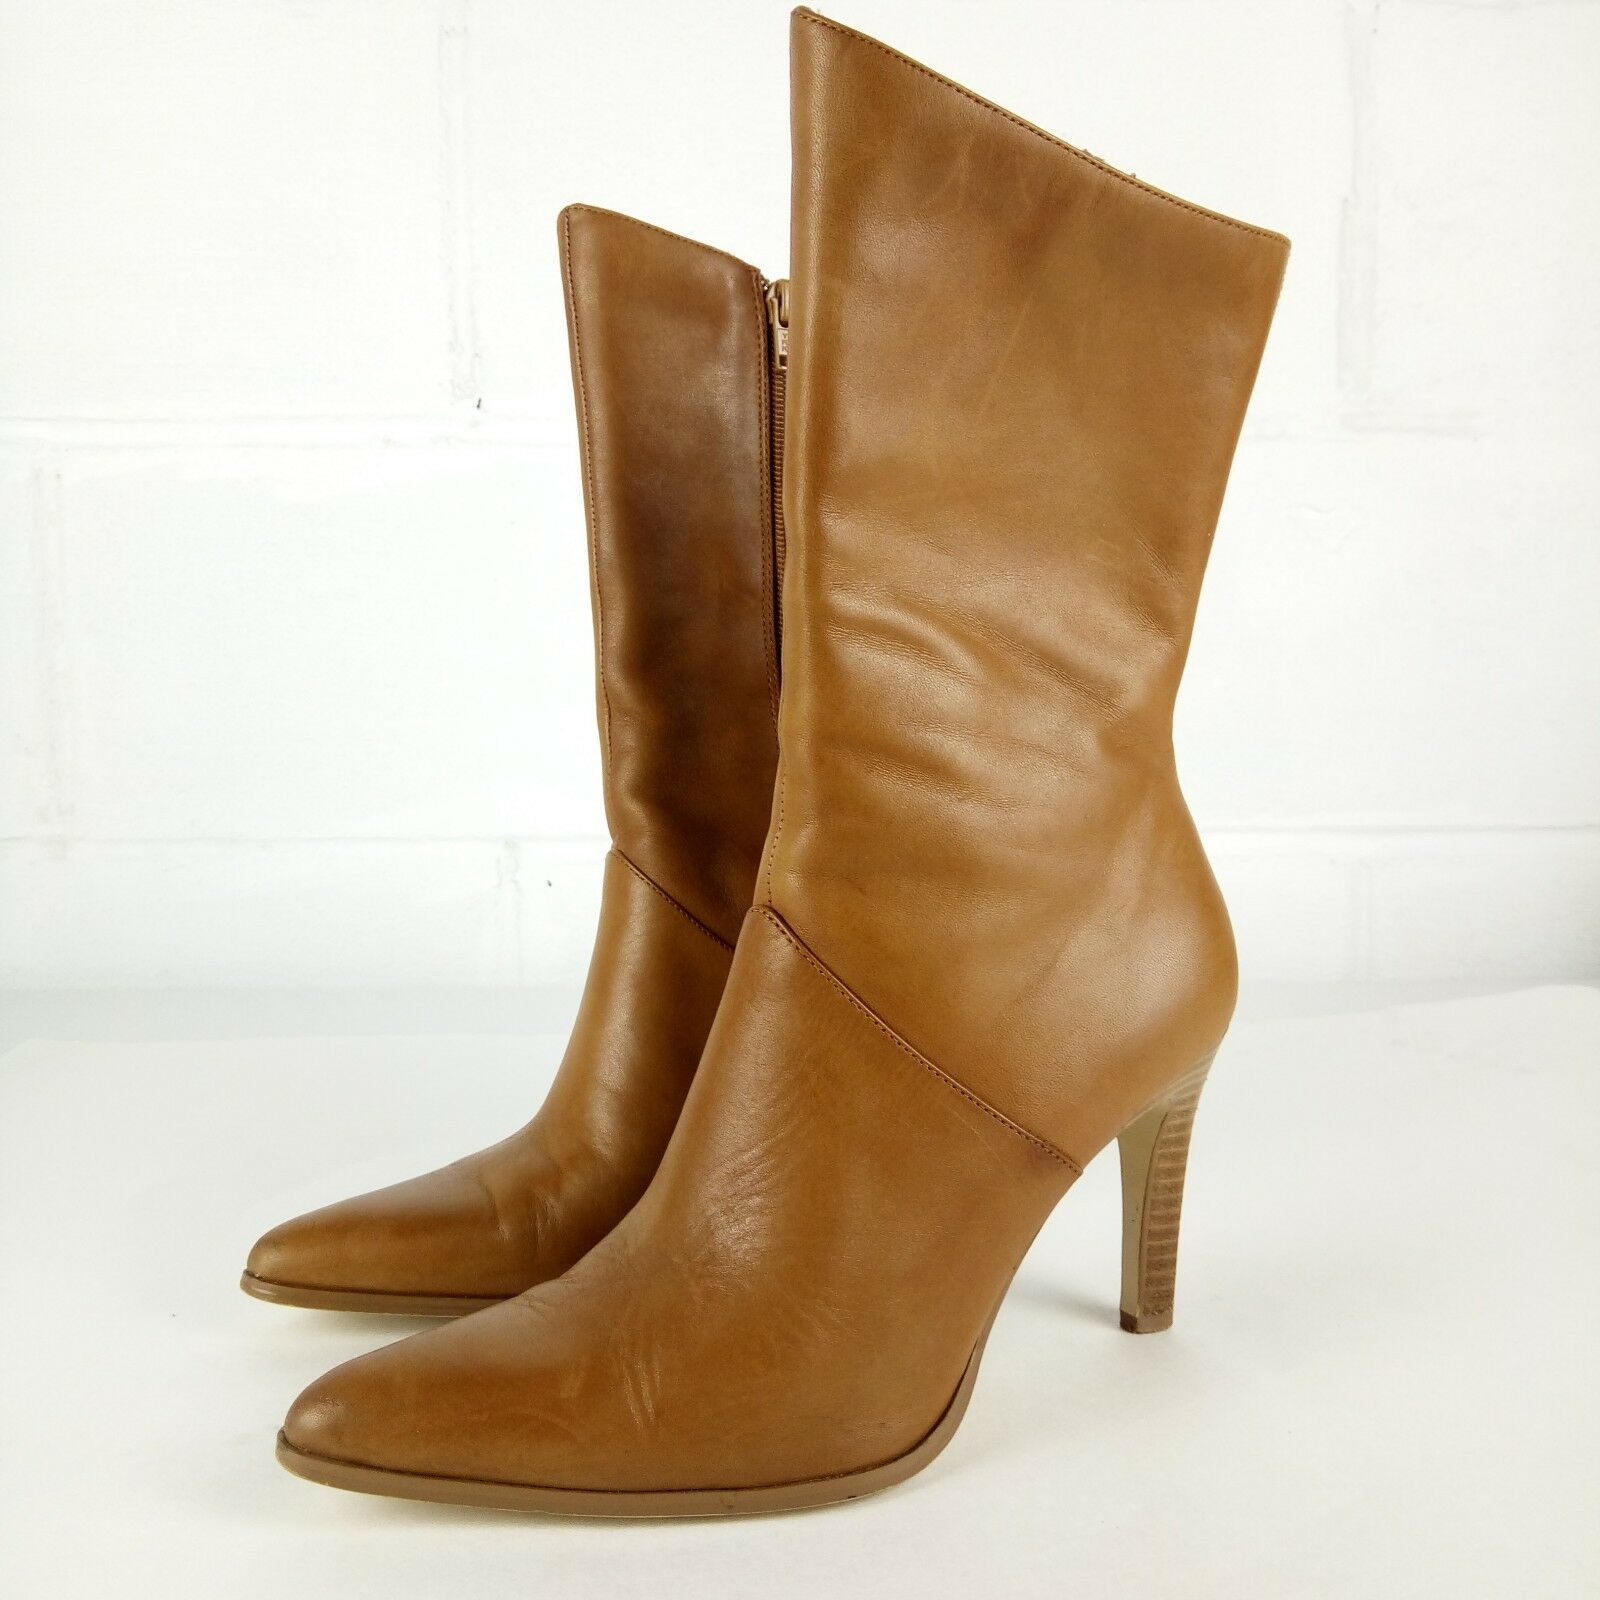 Croft & Barrow Ankle Boots Women Size 7 Leather Camel